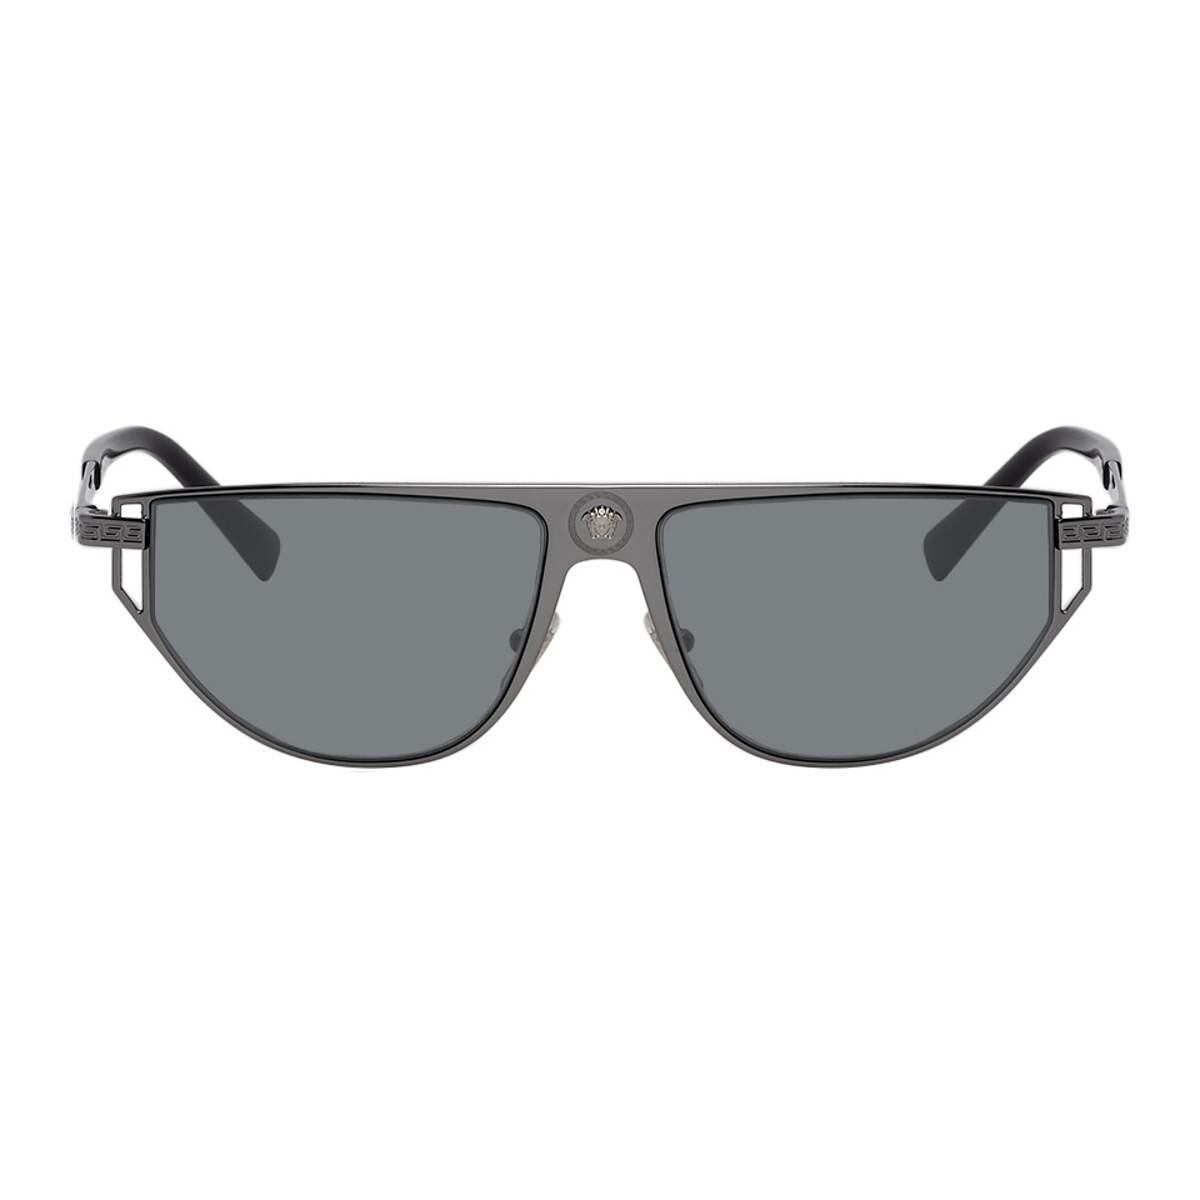 Versace Gunmetal Grecamania Visor Sunglasses Ssense USA MEN Men ACCESSORIES Mens SUNGLASSES